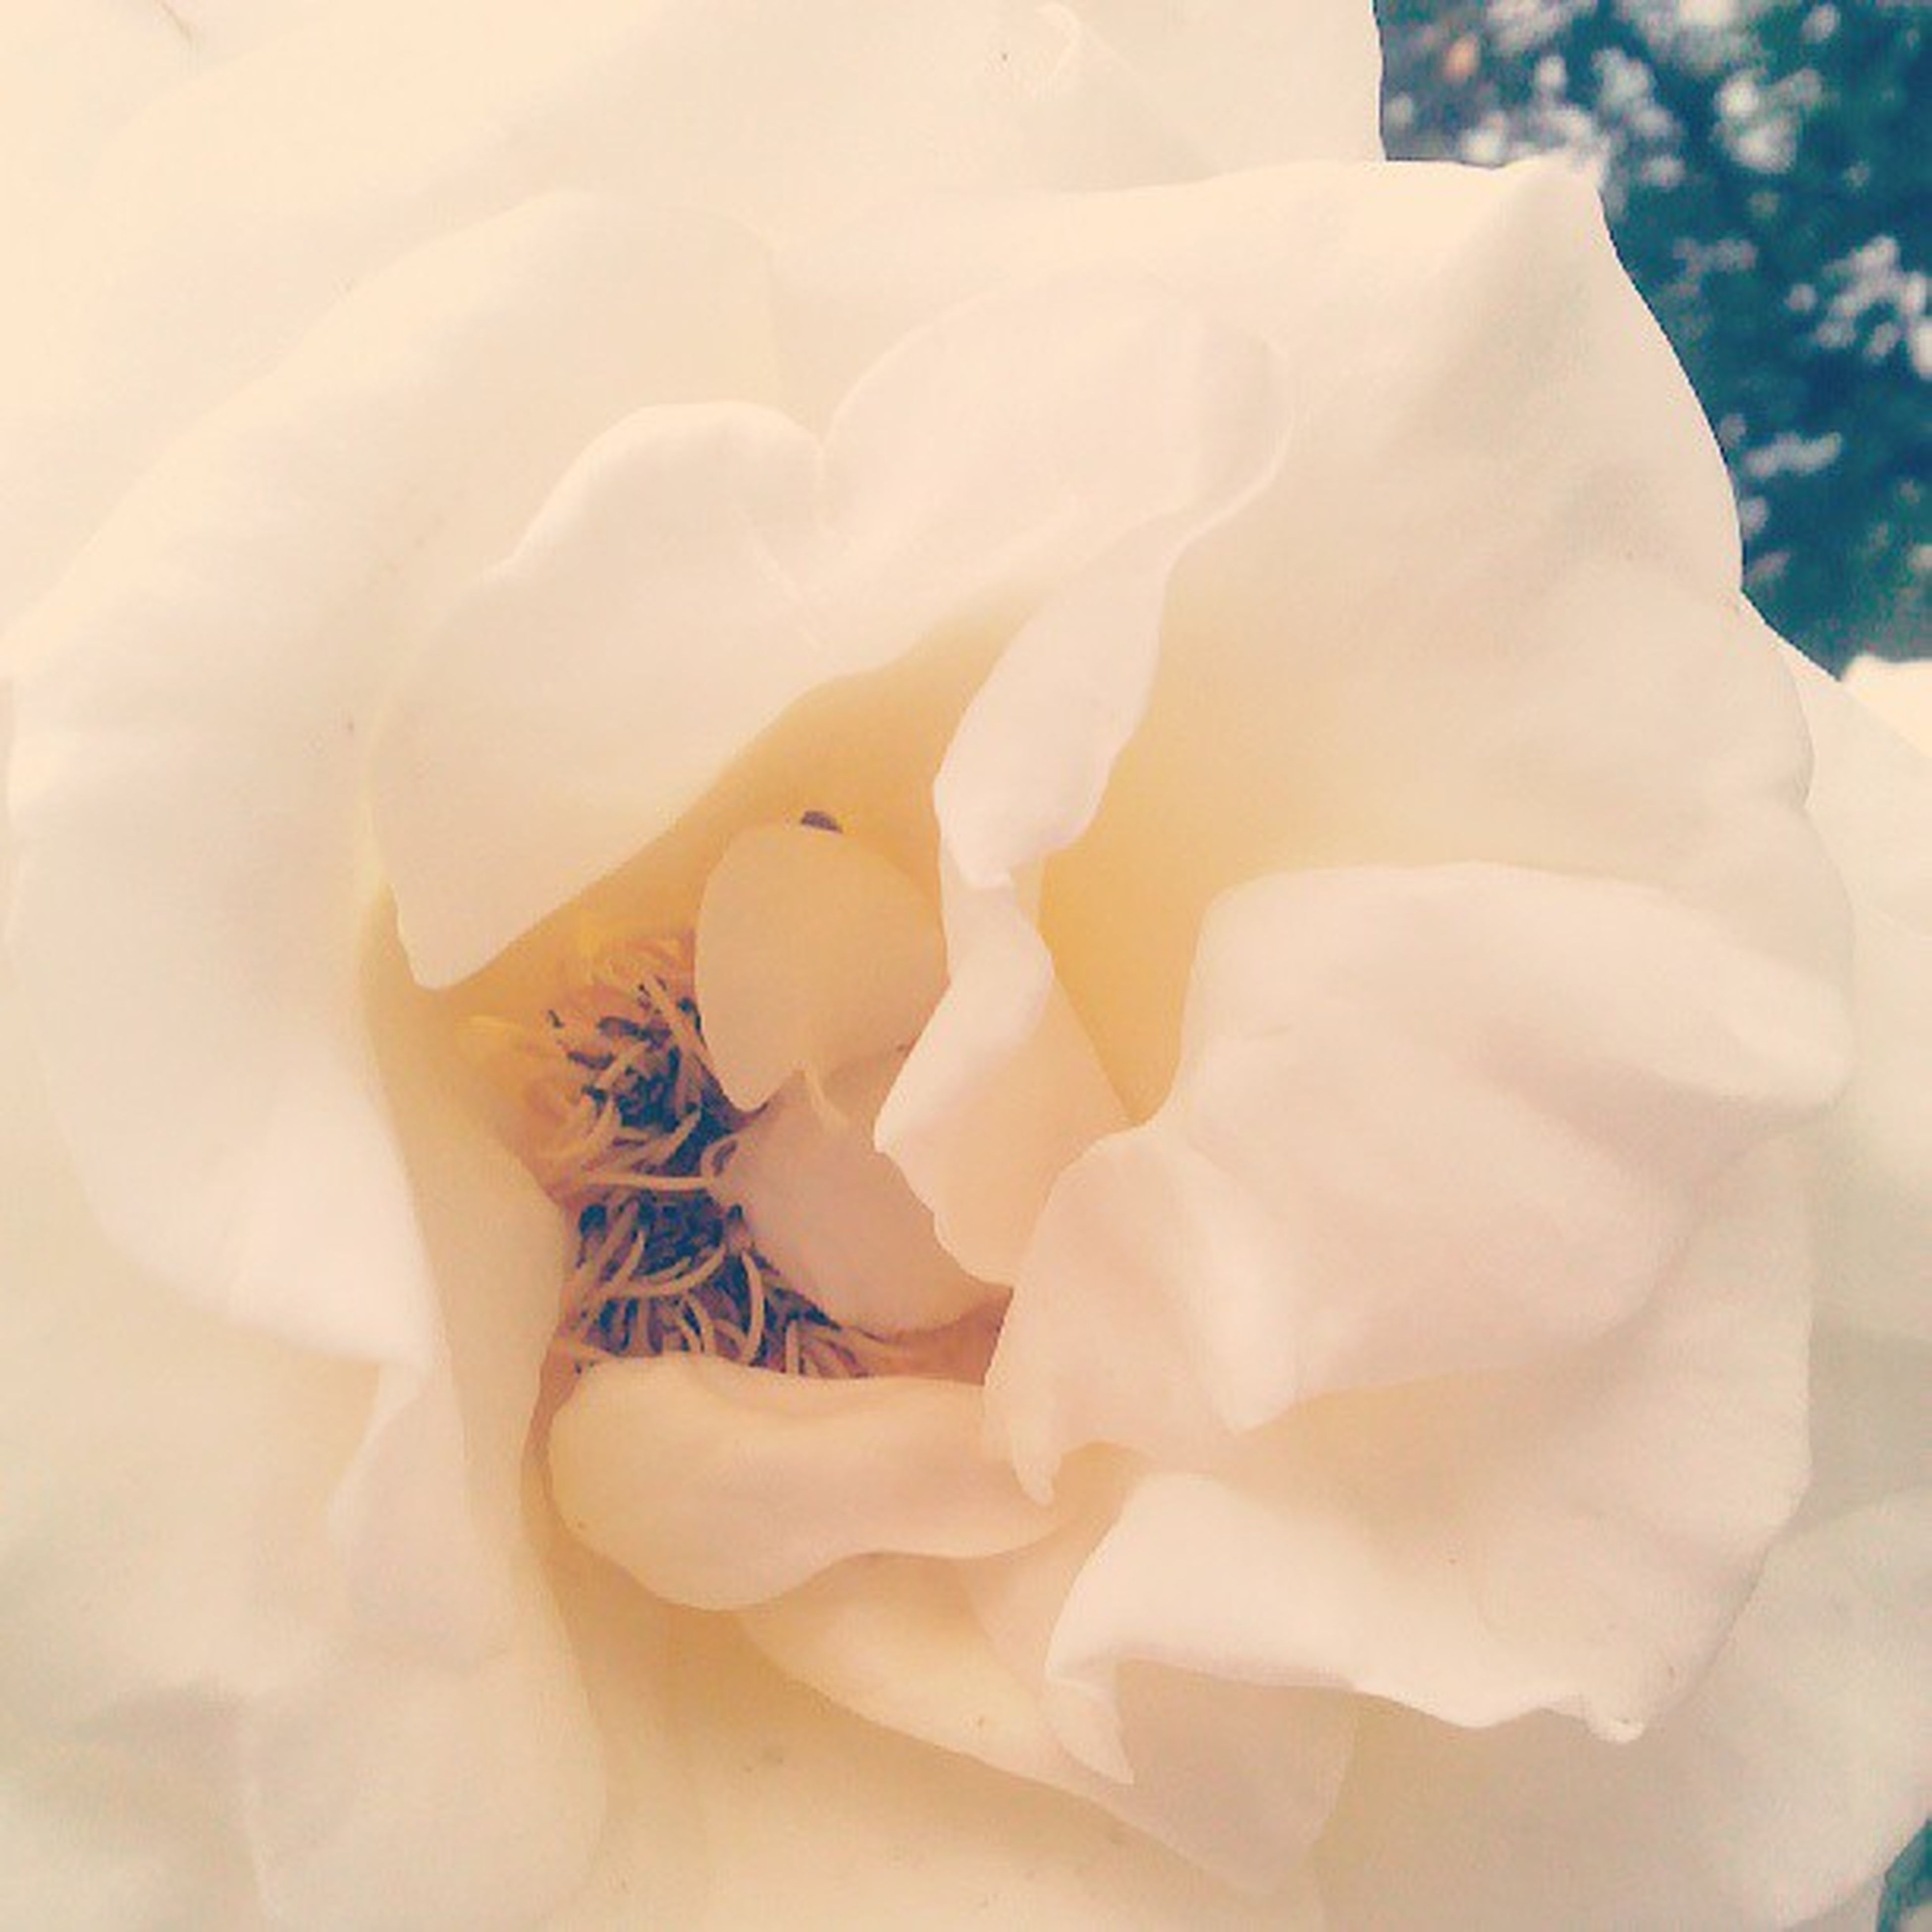 flower, petal, flower head, fragility, freshness, beauty in nature, rose - flower, single flower, close-up, growth, blooming, nature, in bloom, white color, softness, natural pattern, plant, blossom, macro, no people